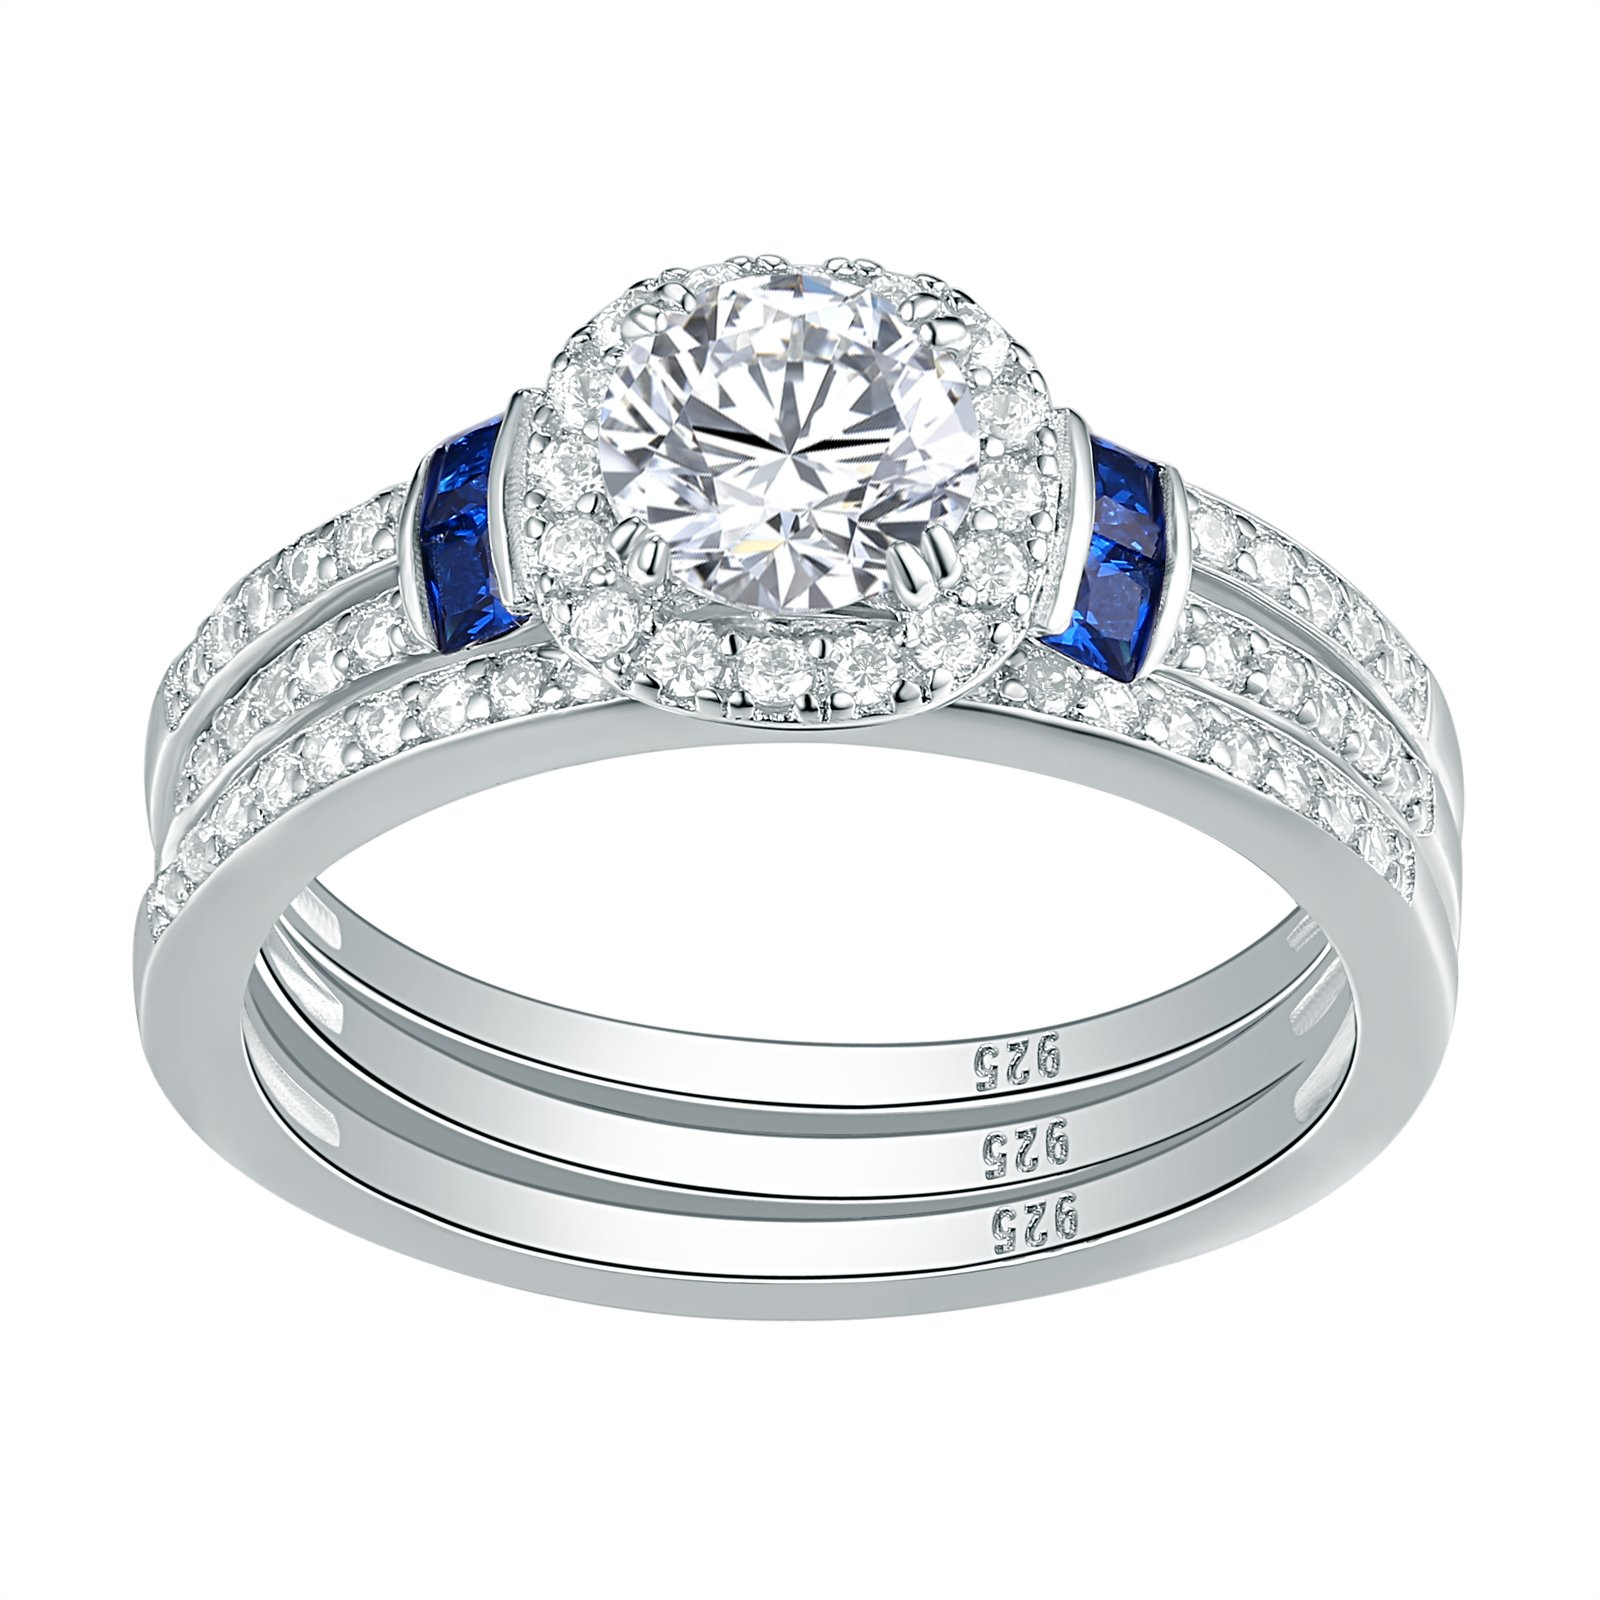 Newshe 3pcs Created Blue Sapphire AAA Cz 925 Sterling Silver Engagement Wedding Ring Set Size 10